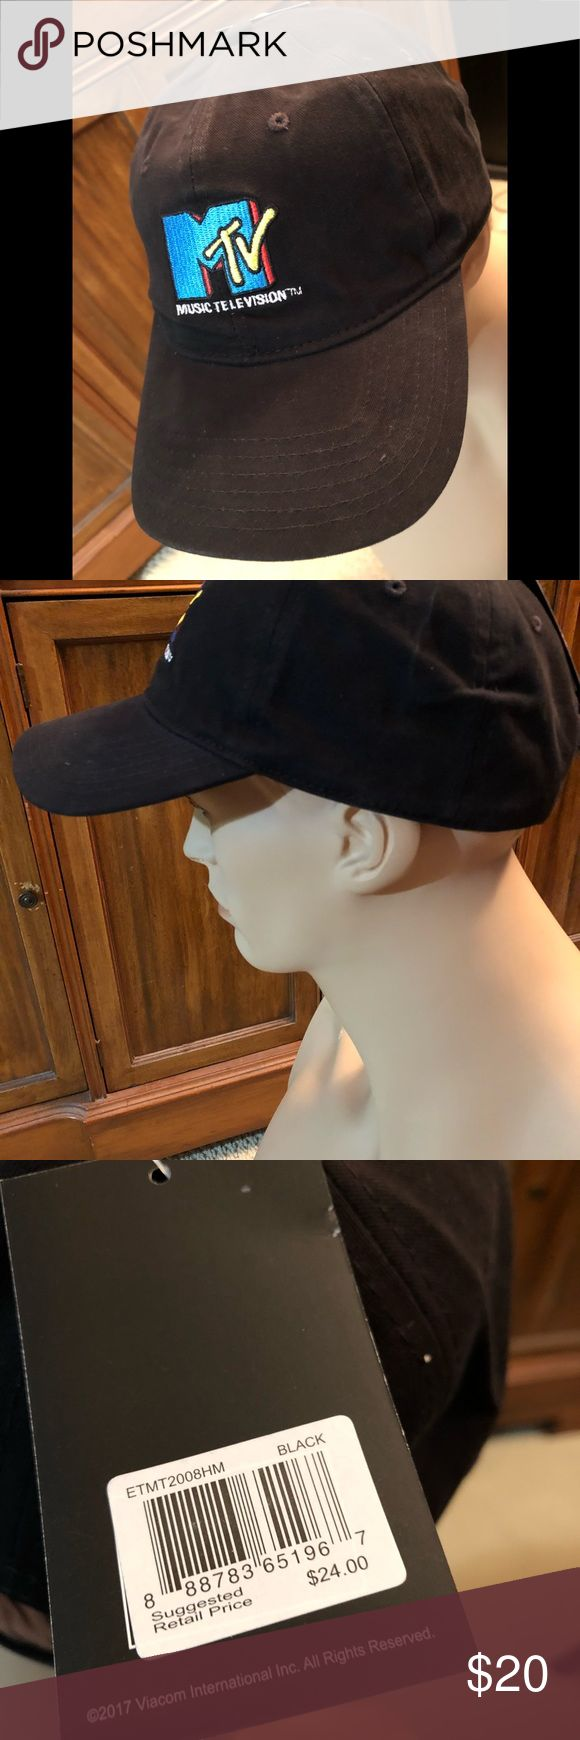 MTV music television adjustable hat cap New with tags adjustable MTV black cap Accessories Hats